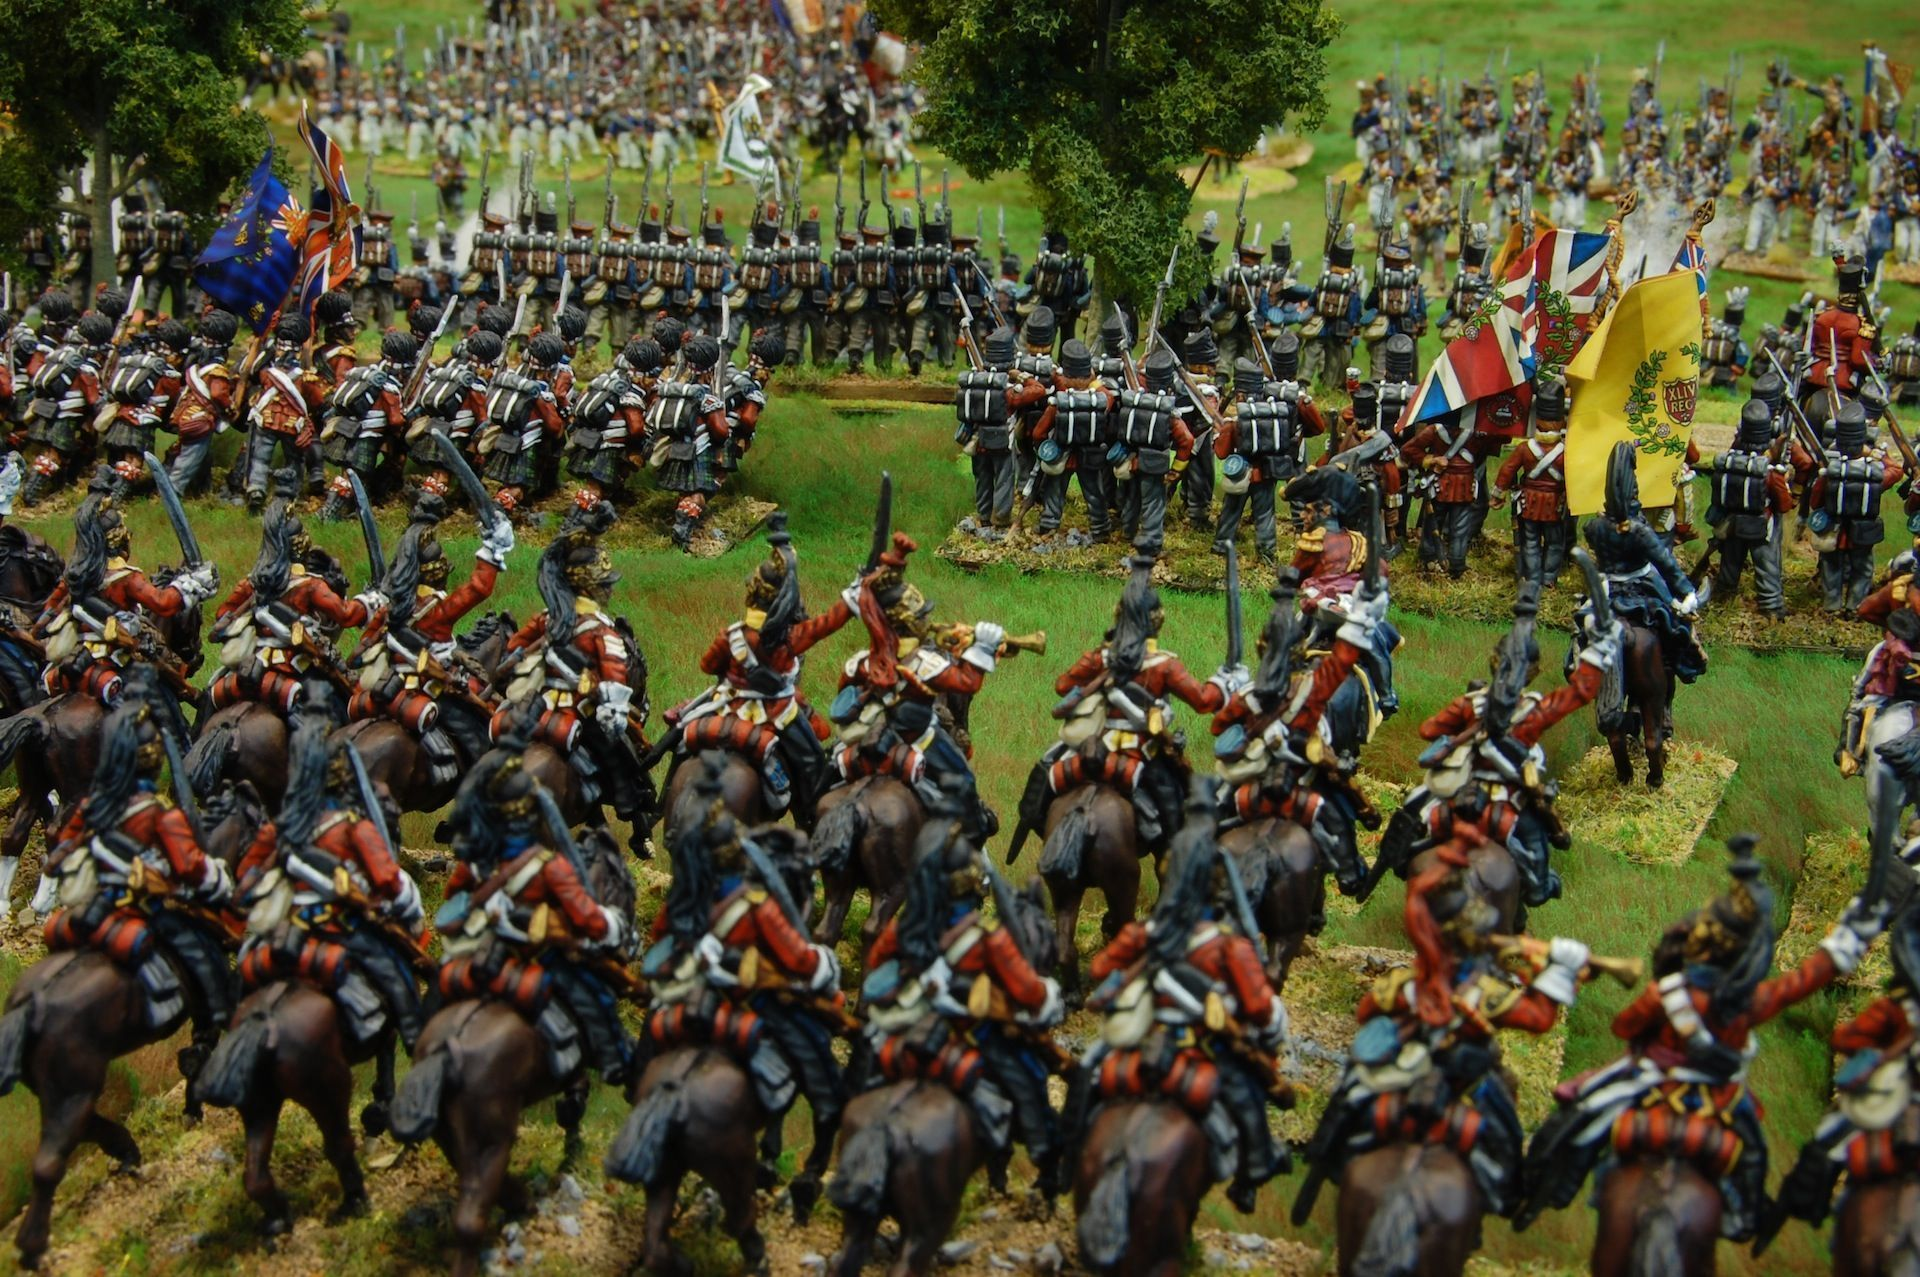 Waterloo 1815: L'attac de D'Erlon amb Black Powder, 28mm